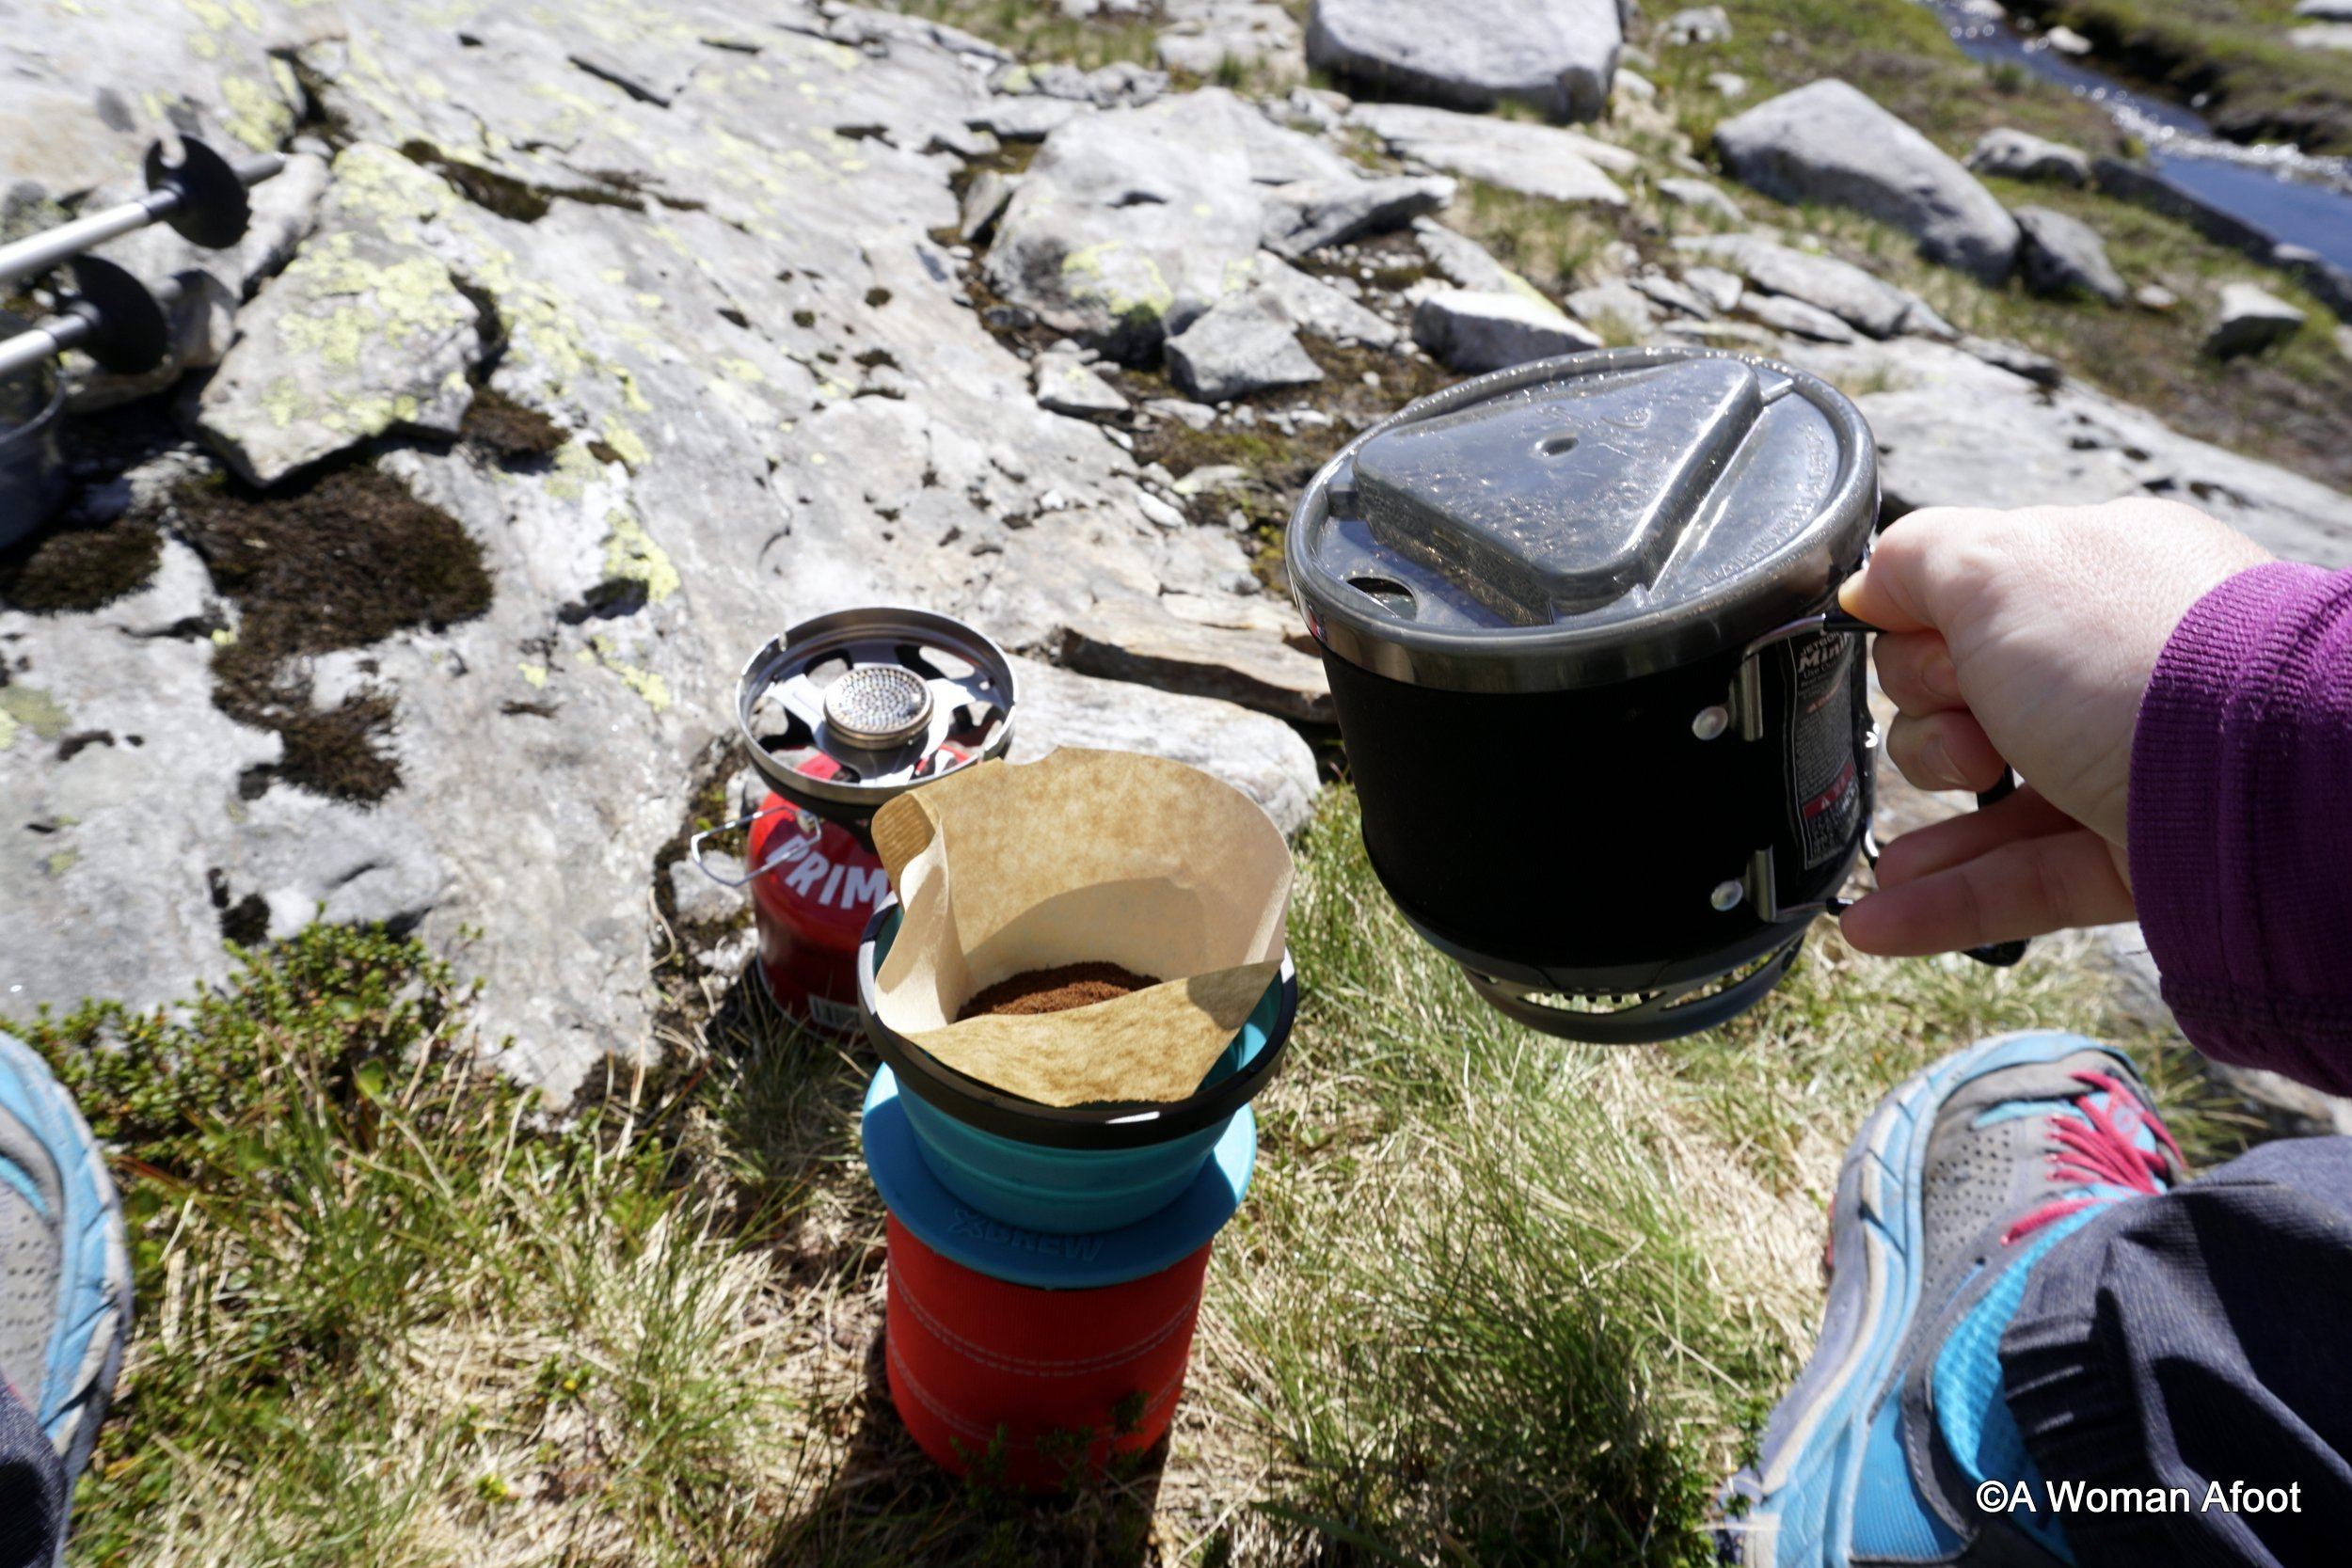 Aluminum or Steel? Or maybe titanium? A whole set or individual pots? Learn all you need about the various camping cookware to choose what you need! A high-quality advice for hikers, backpackers, and car campers. awomanafoot.com #camping | #hiking | #camp kitchen | camping dishes | backpacking | What to pack for camping? | What Camping gear do I need? |